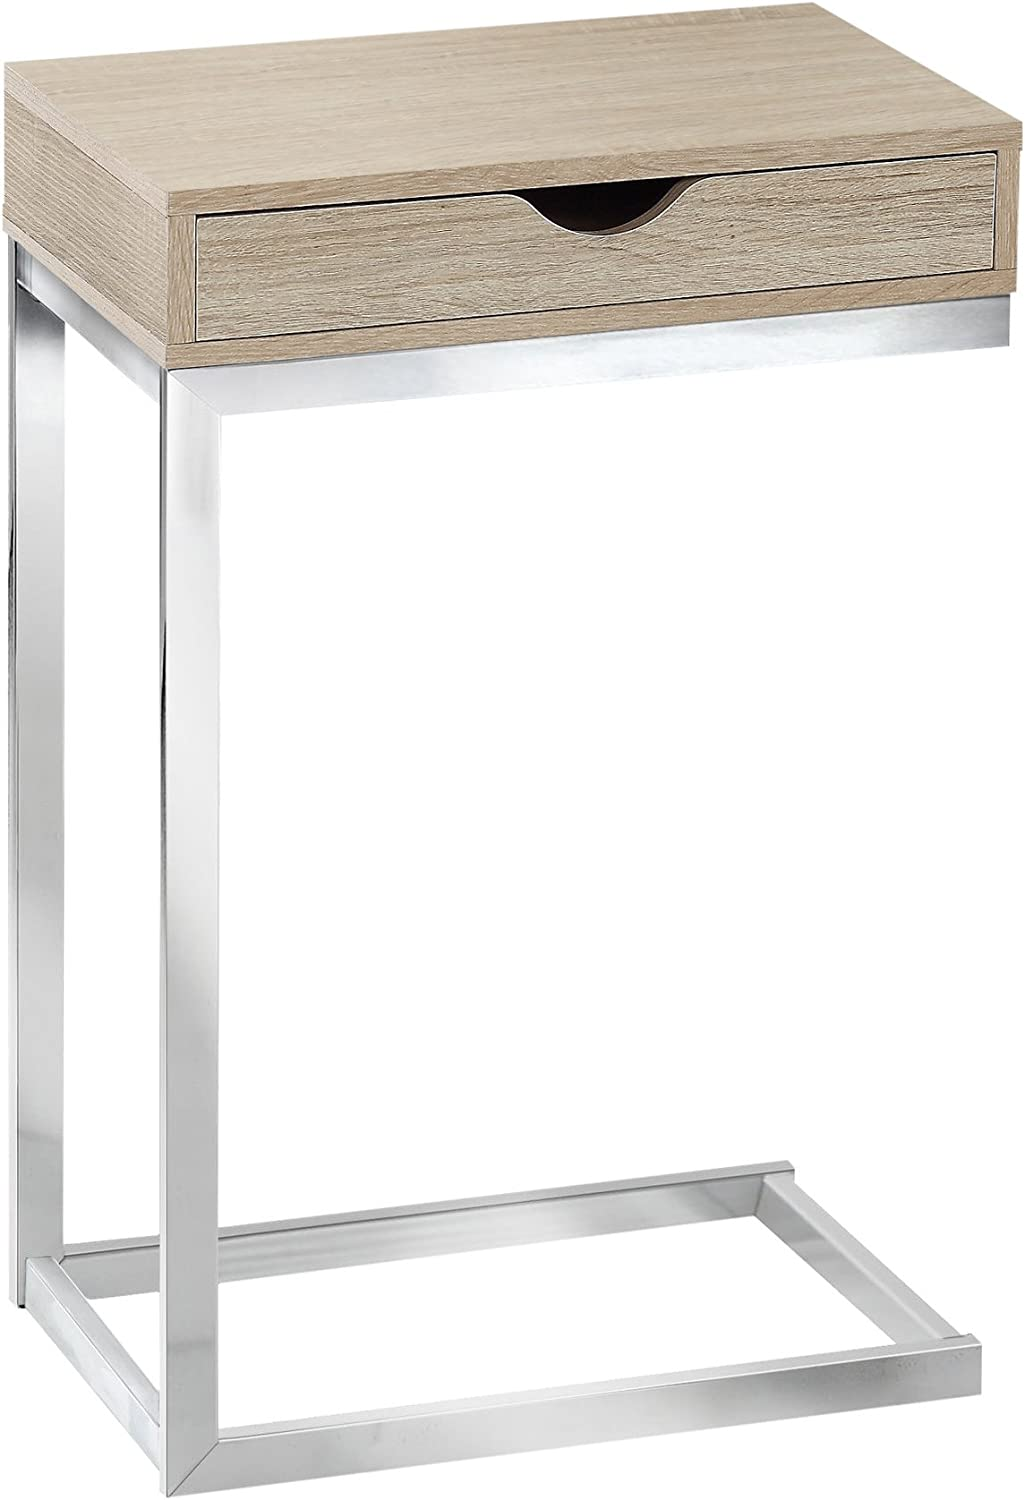 Monarch Specialties Reclaimed-Look Chrome Metal Accent Table, 19.75-Inch, Natural